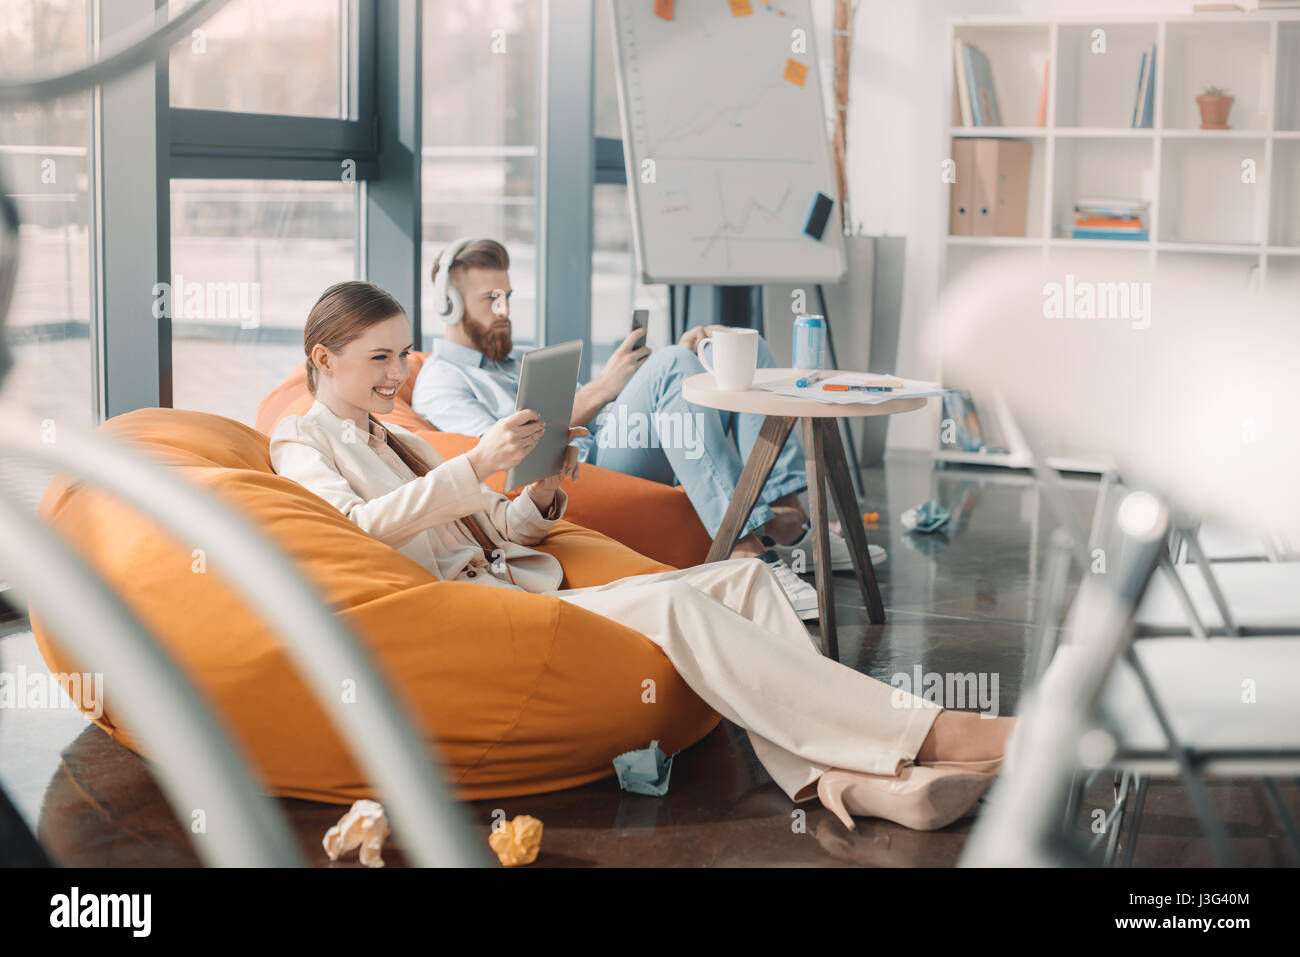 Young business people sitting in bean bag chairs and using devices - Stock Image